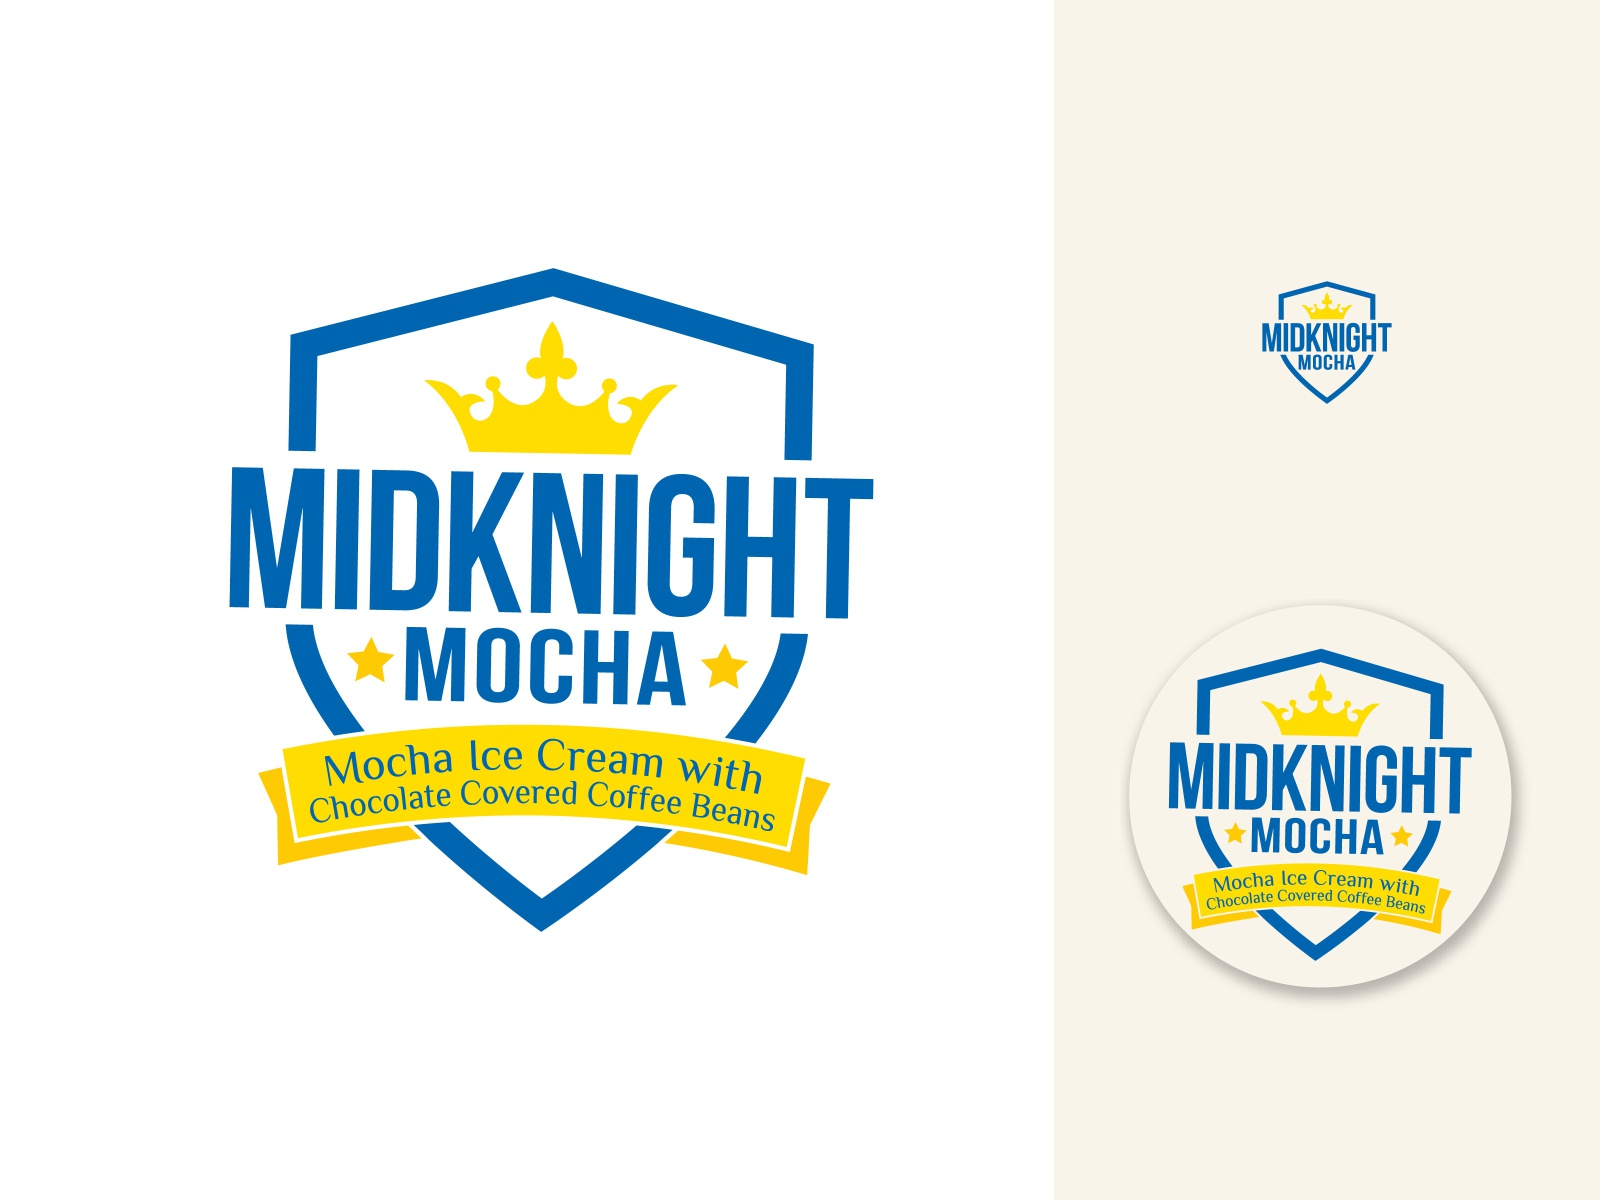 MidKnight Mocha Ice Cream mark and Label